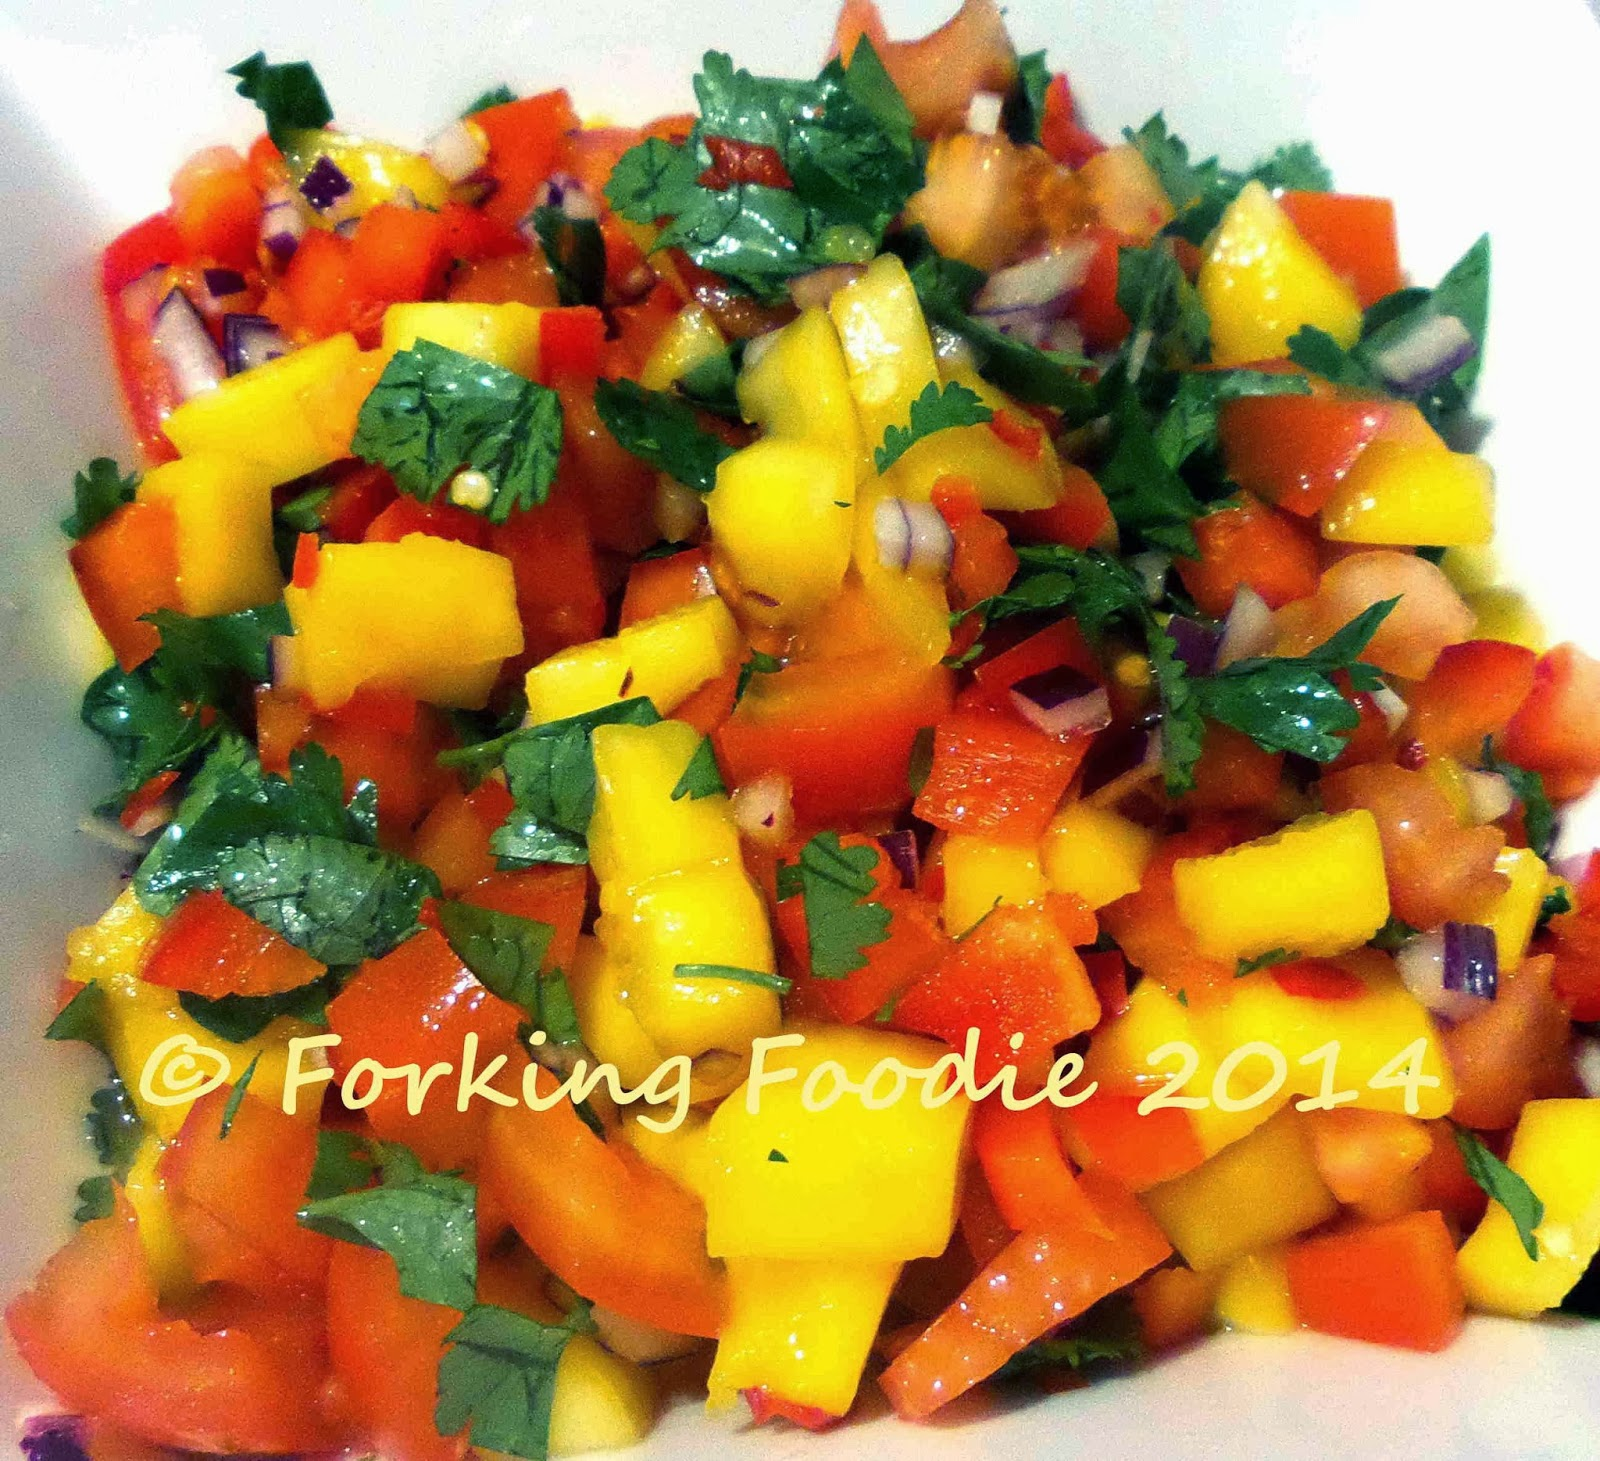 Forking Foodie: Mango, Red Pepper and Coriander Salsa